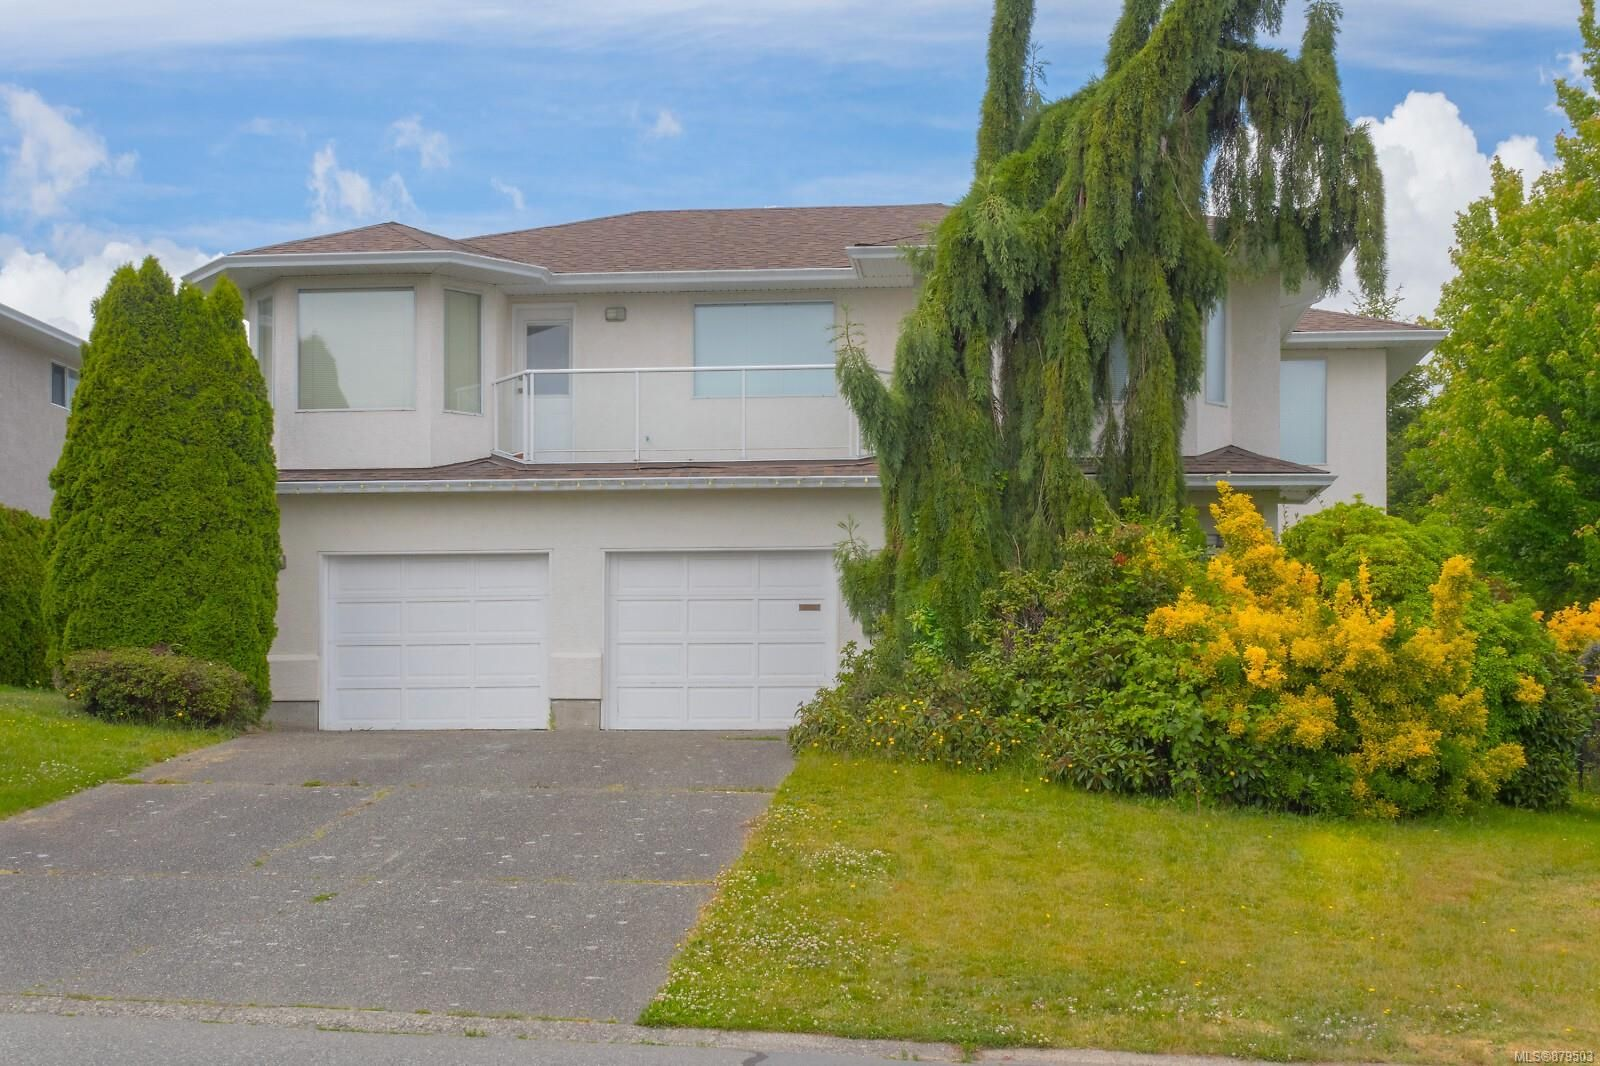 Main Photo: 6428 Bella Vista Dr in : CS Tanner House for sale (Central Saanich)  : MLS®# 879503